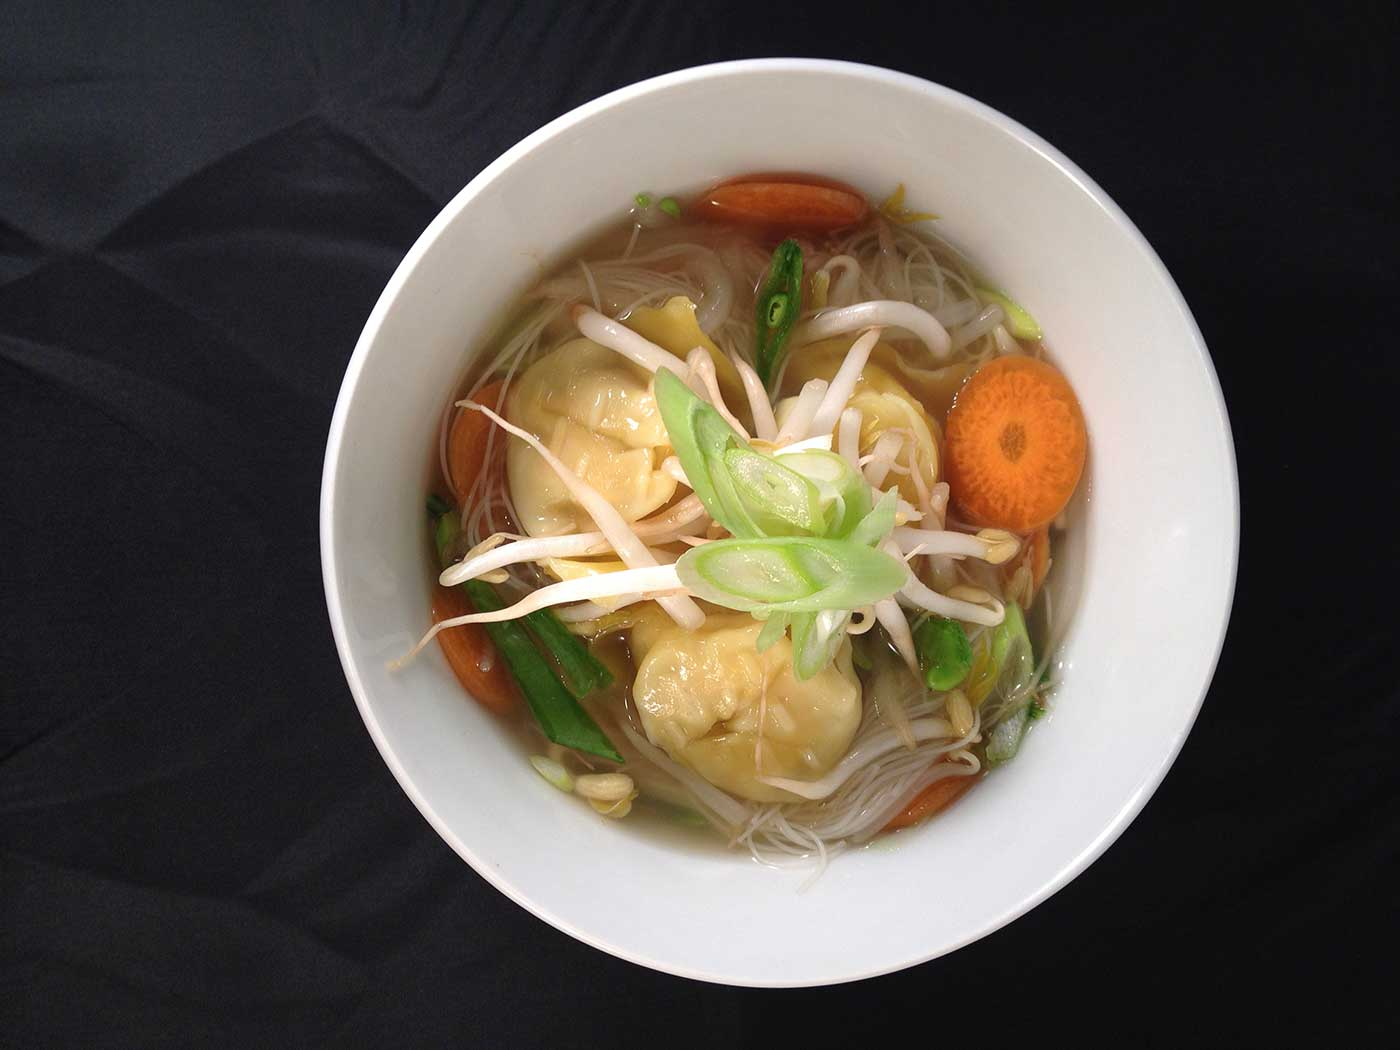 Chicken-Wonton-Noodle-Soup-Thermomix-Recipe